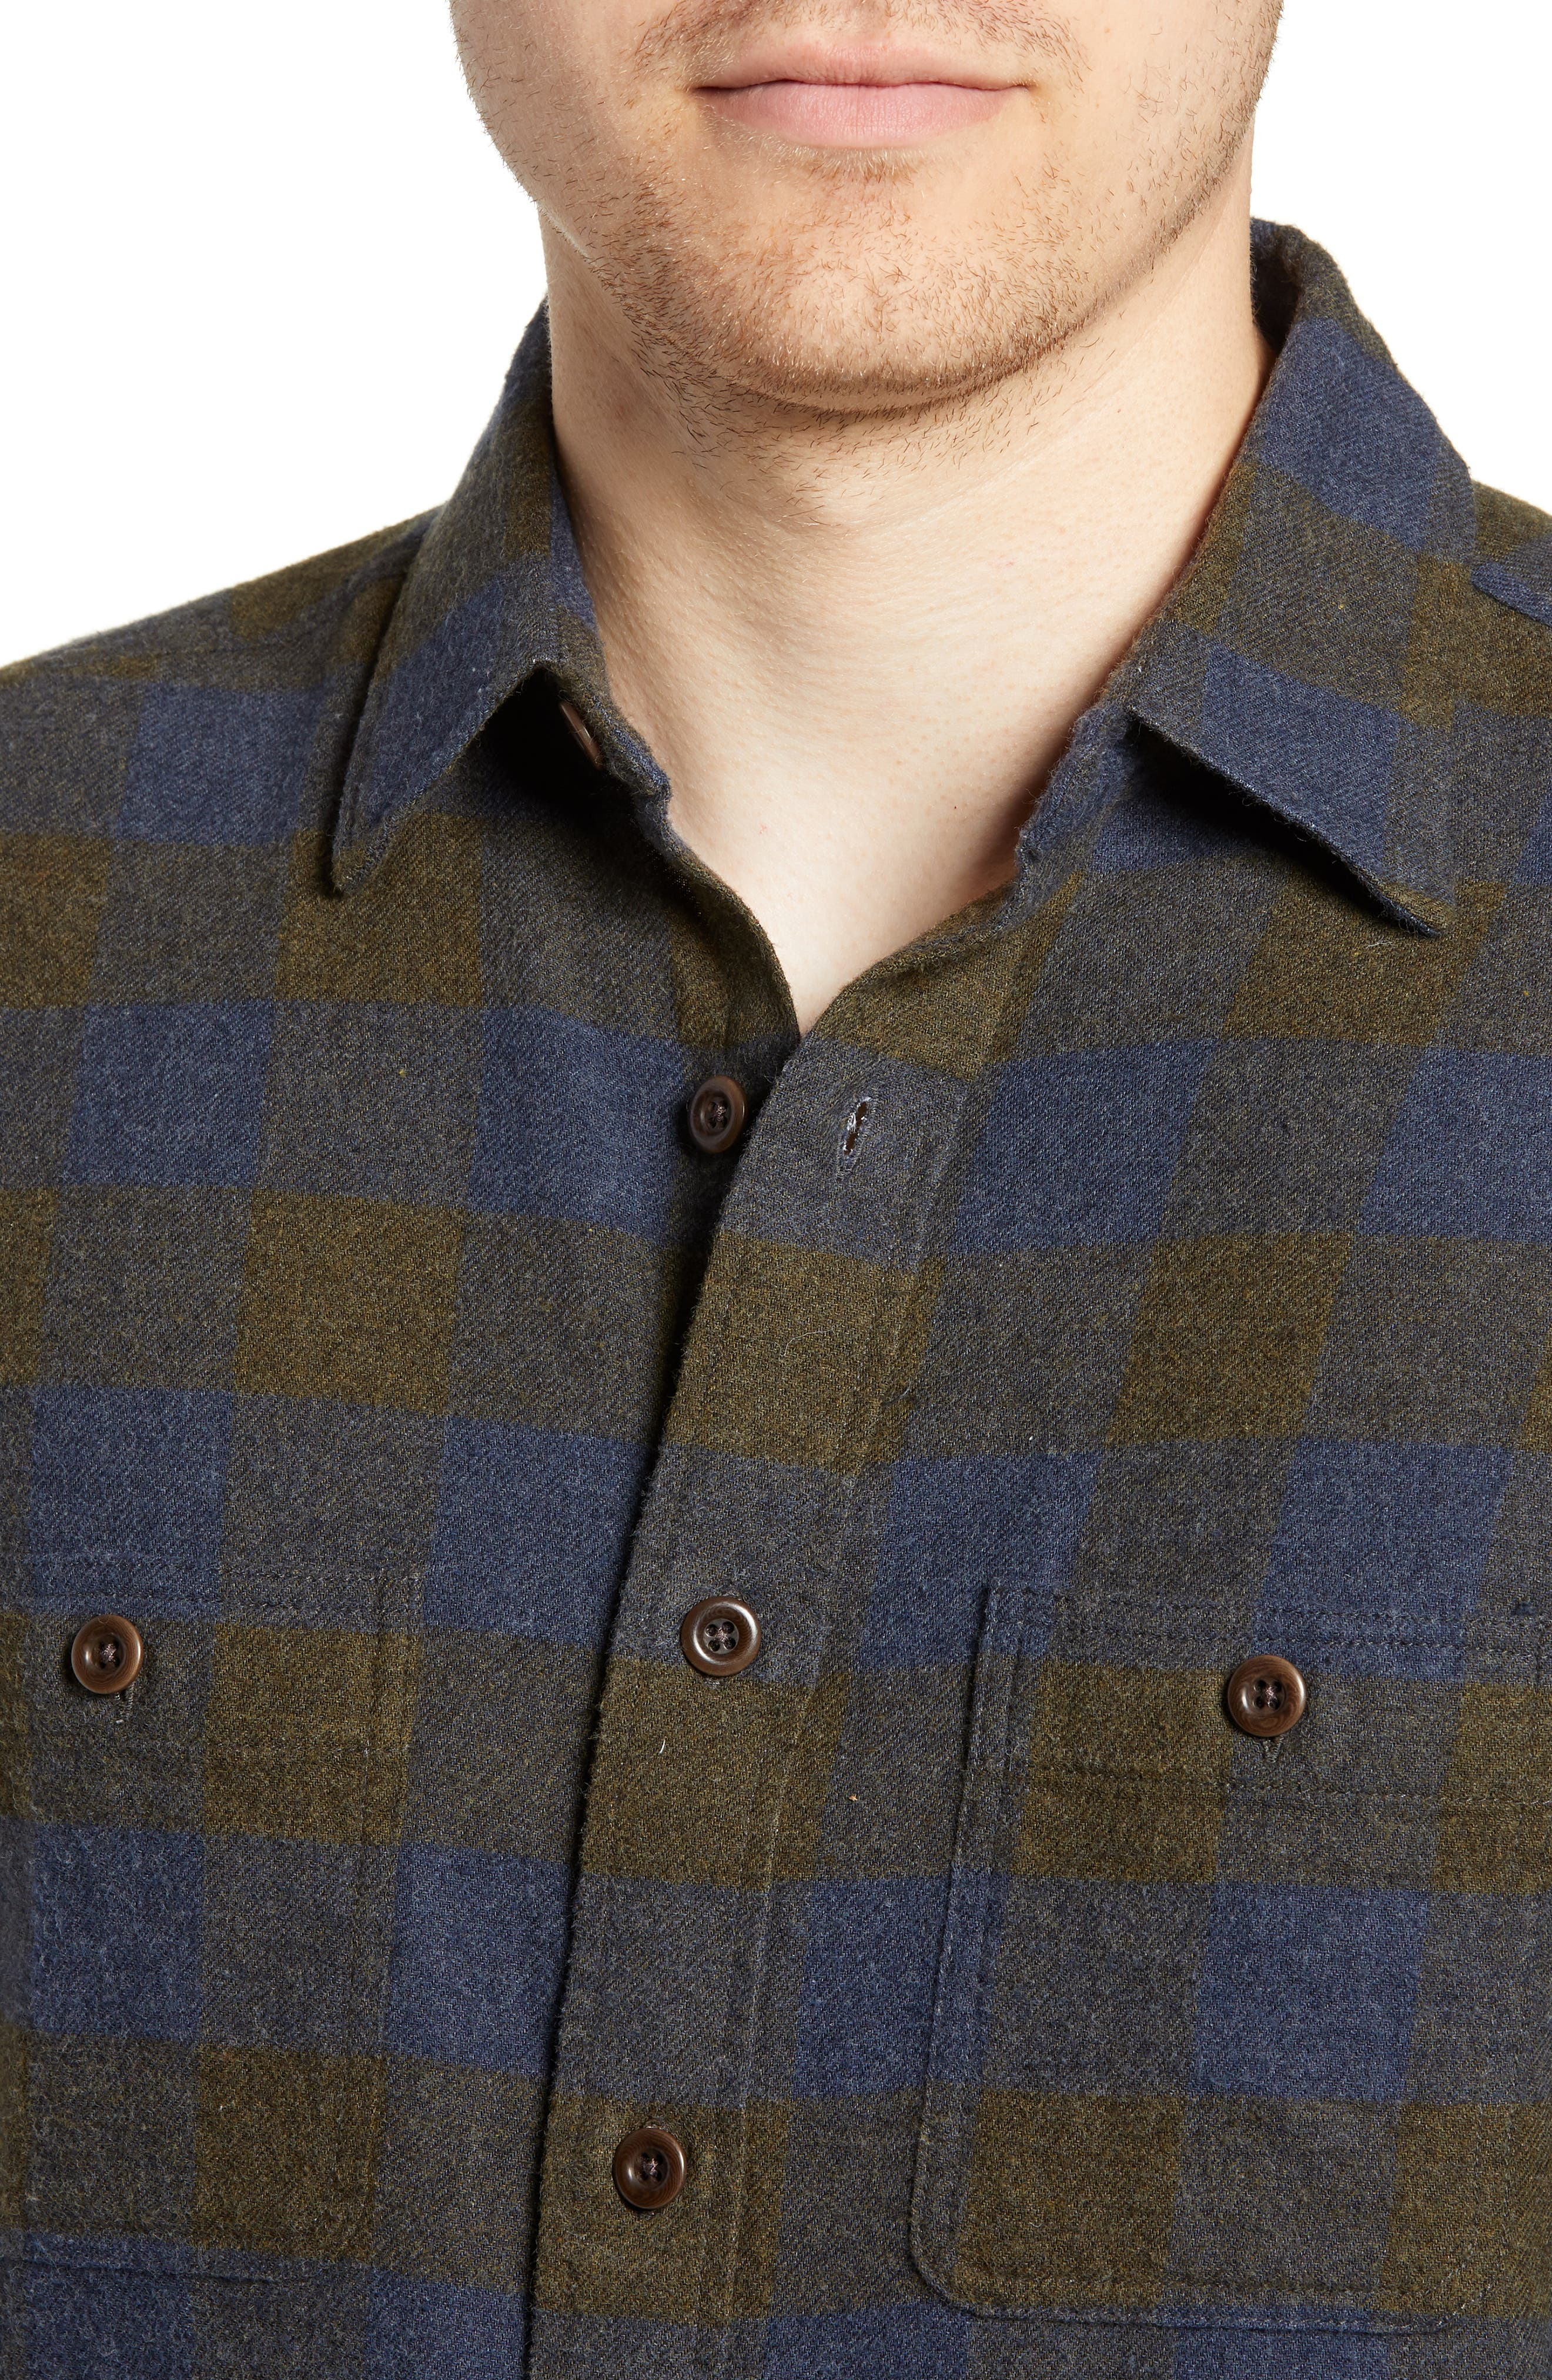 Seasons Check Flannel Shirt,                             Alternate thumbnail 2, color,                             NAVY OLIVE BUFFALO